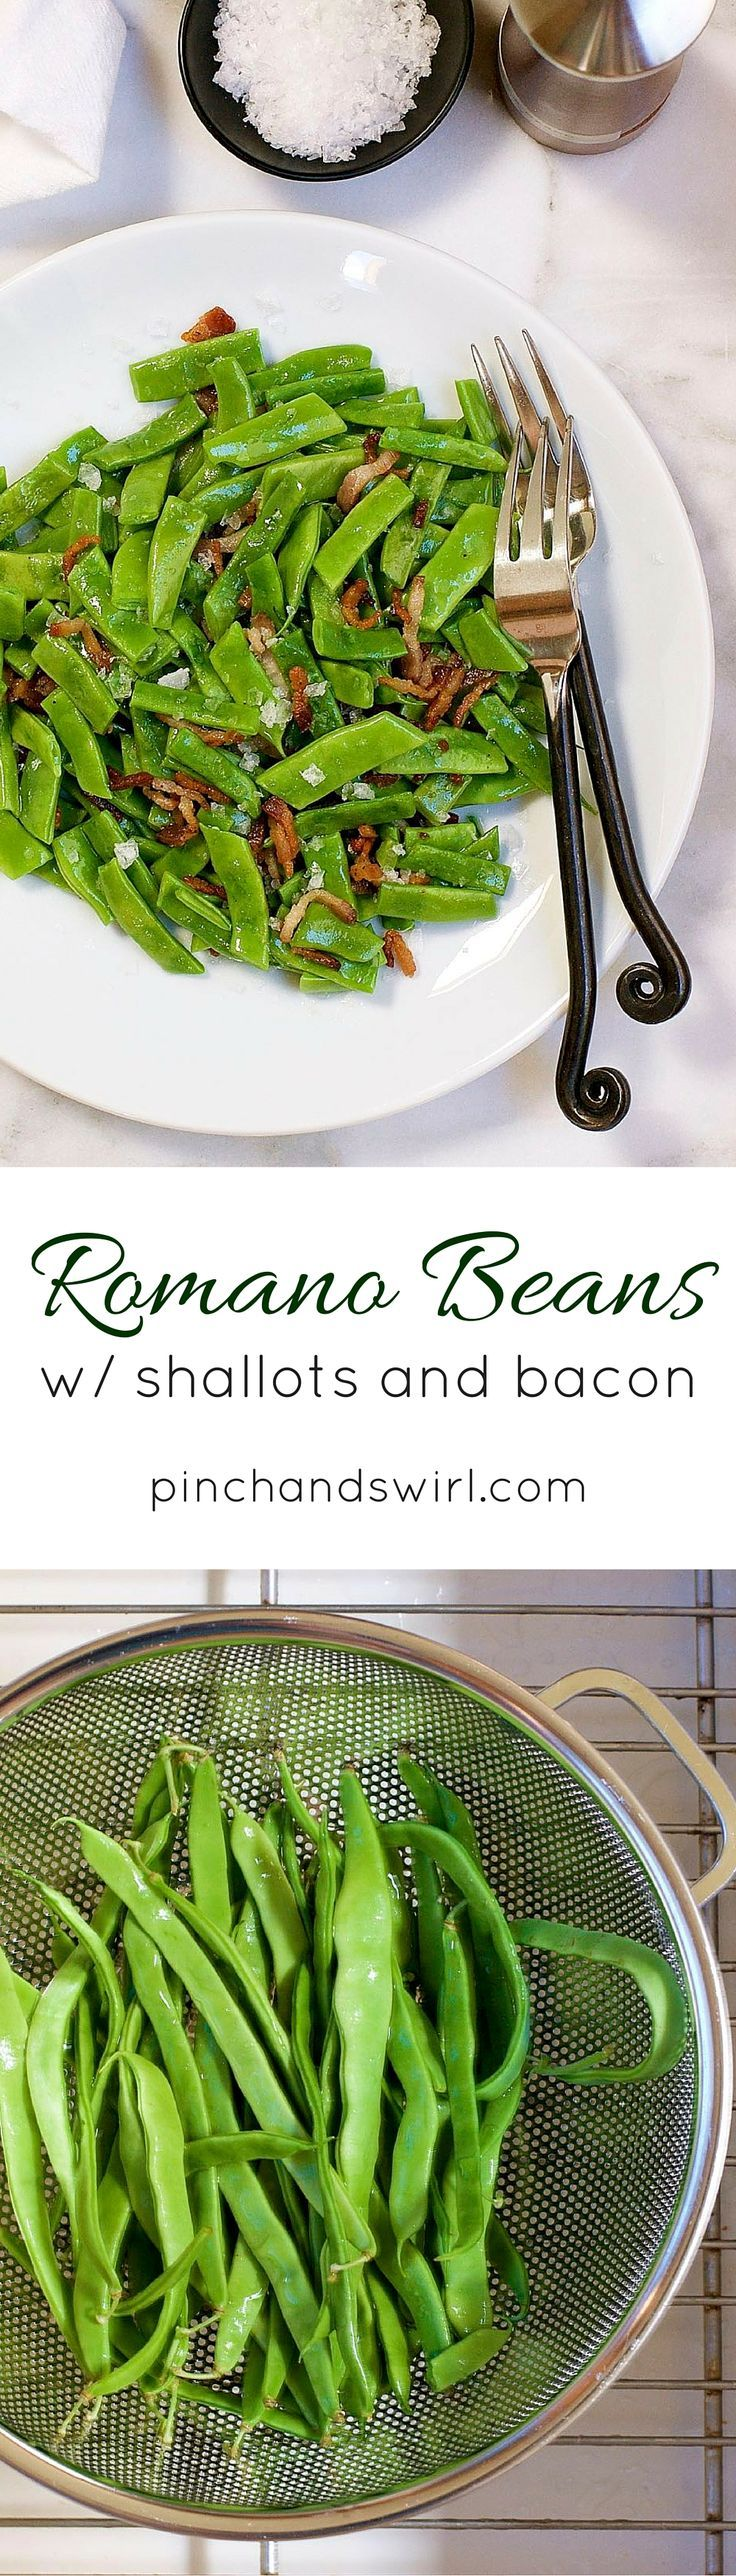 If you're looking for a simple and delicious Romano Bean recipe, this is it! Tender, flavorful Romano Beans get a quick blanch in boiling water and then are tossed with crispy shallots and bacon. It's the perfect summer side dish, ready in minutes.